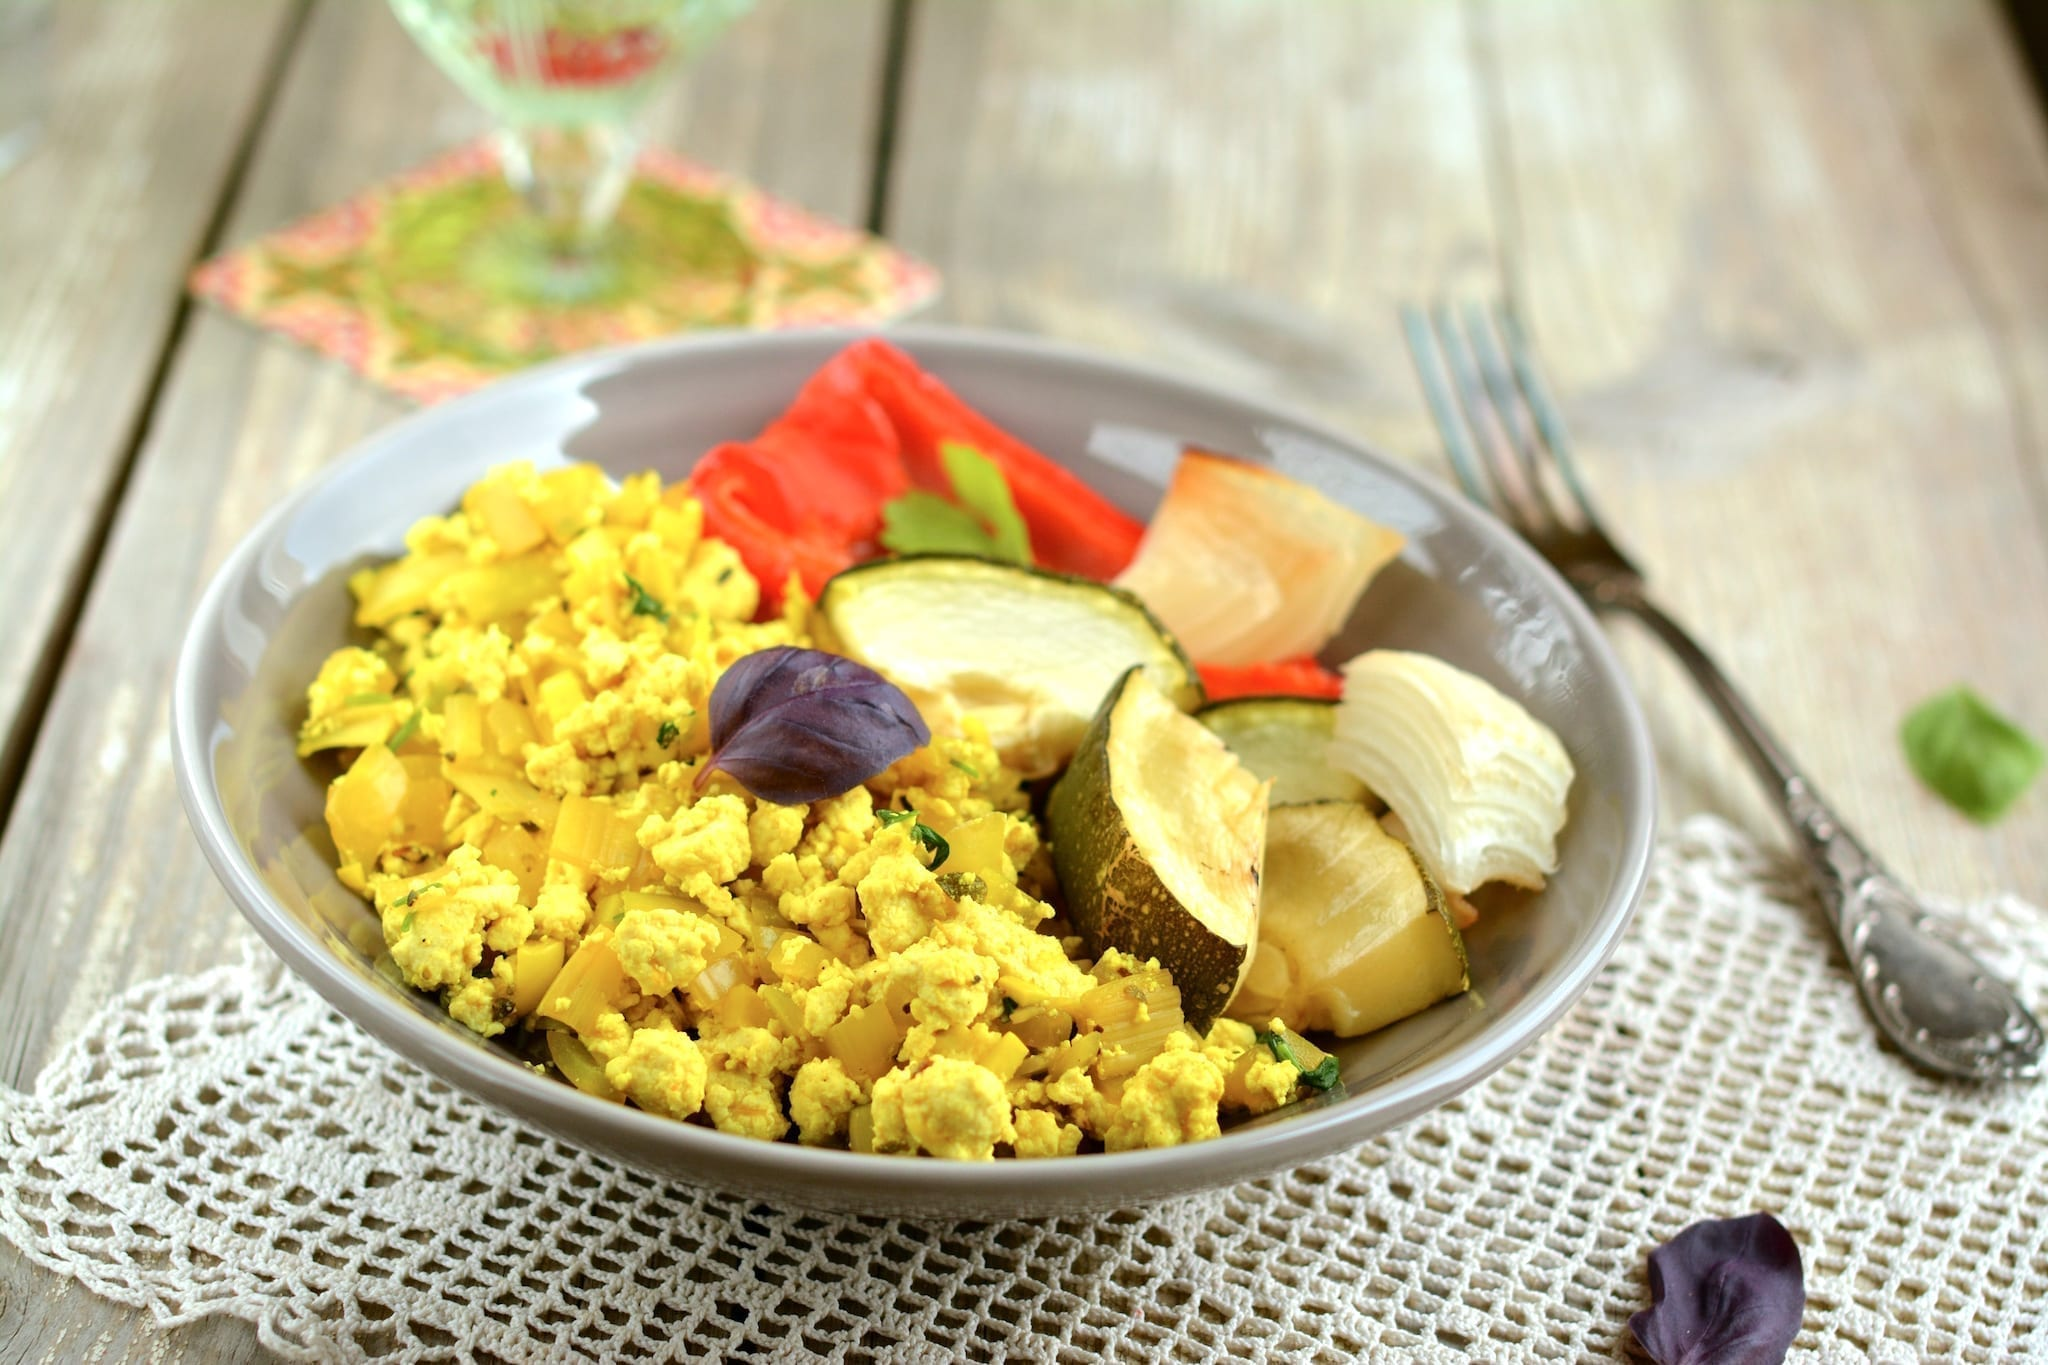 Scrambled tofu, vegan candida diet meal plans